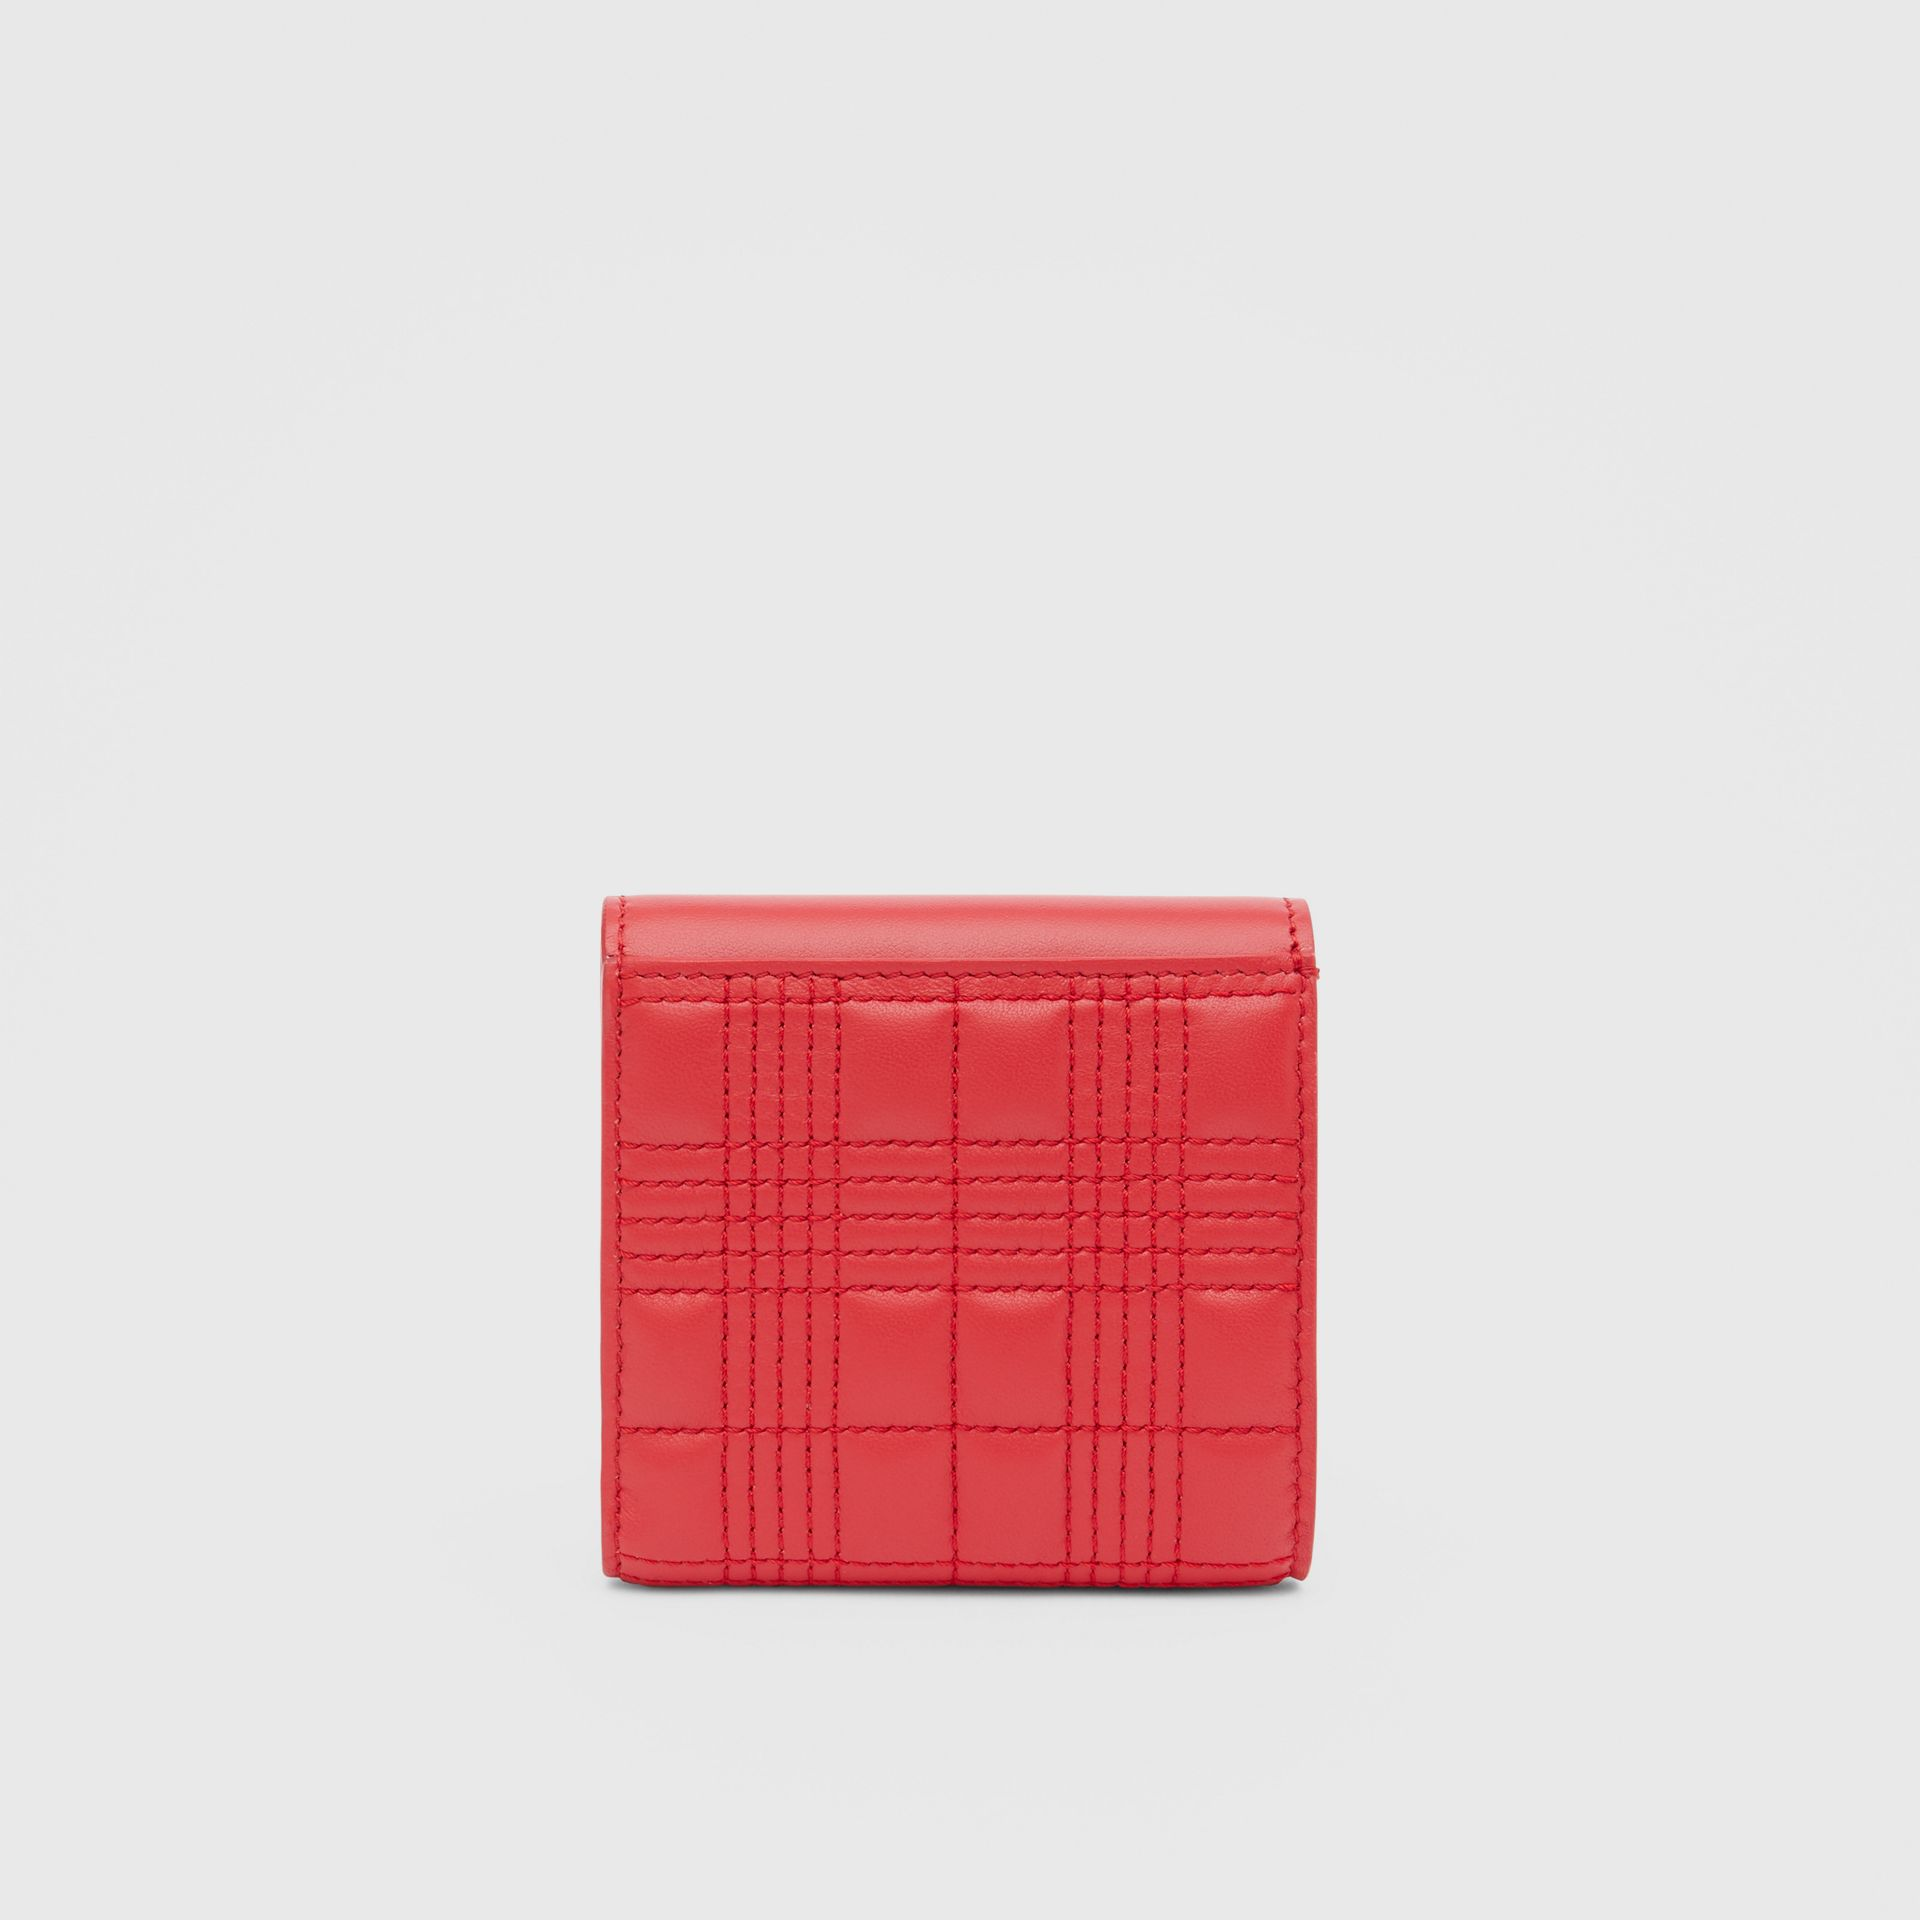 Quilted Lambskin Folding Wallet in Bright Red - Women | Burberry Hong Kong S.A.R - gallery image 4